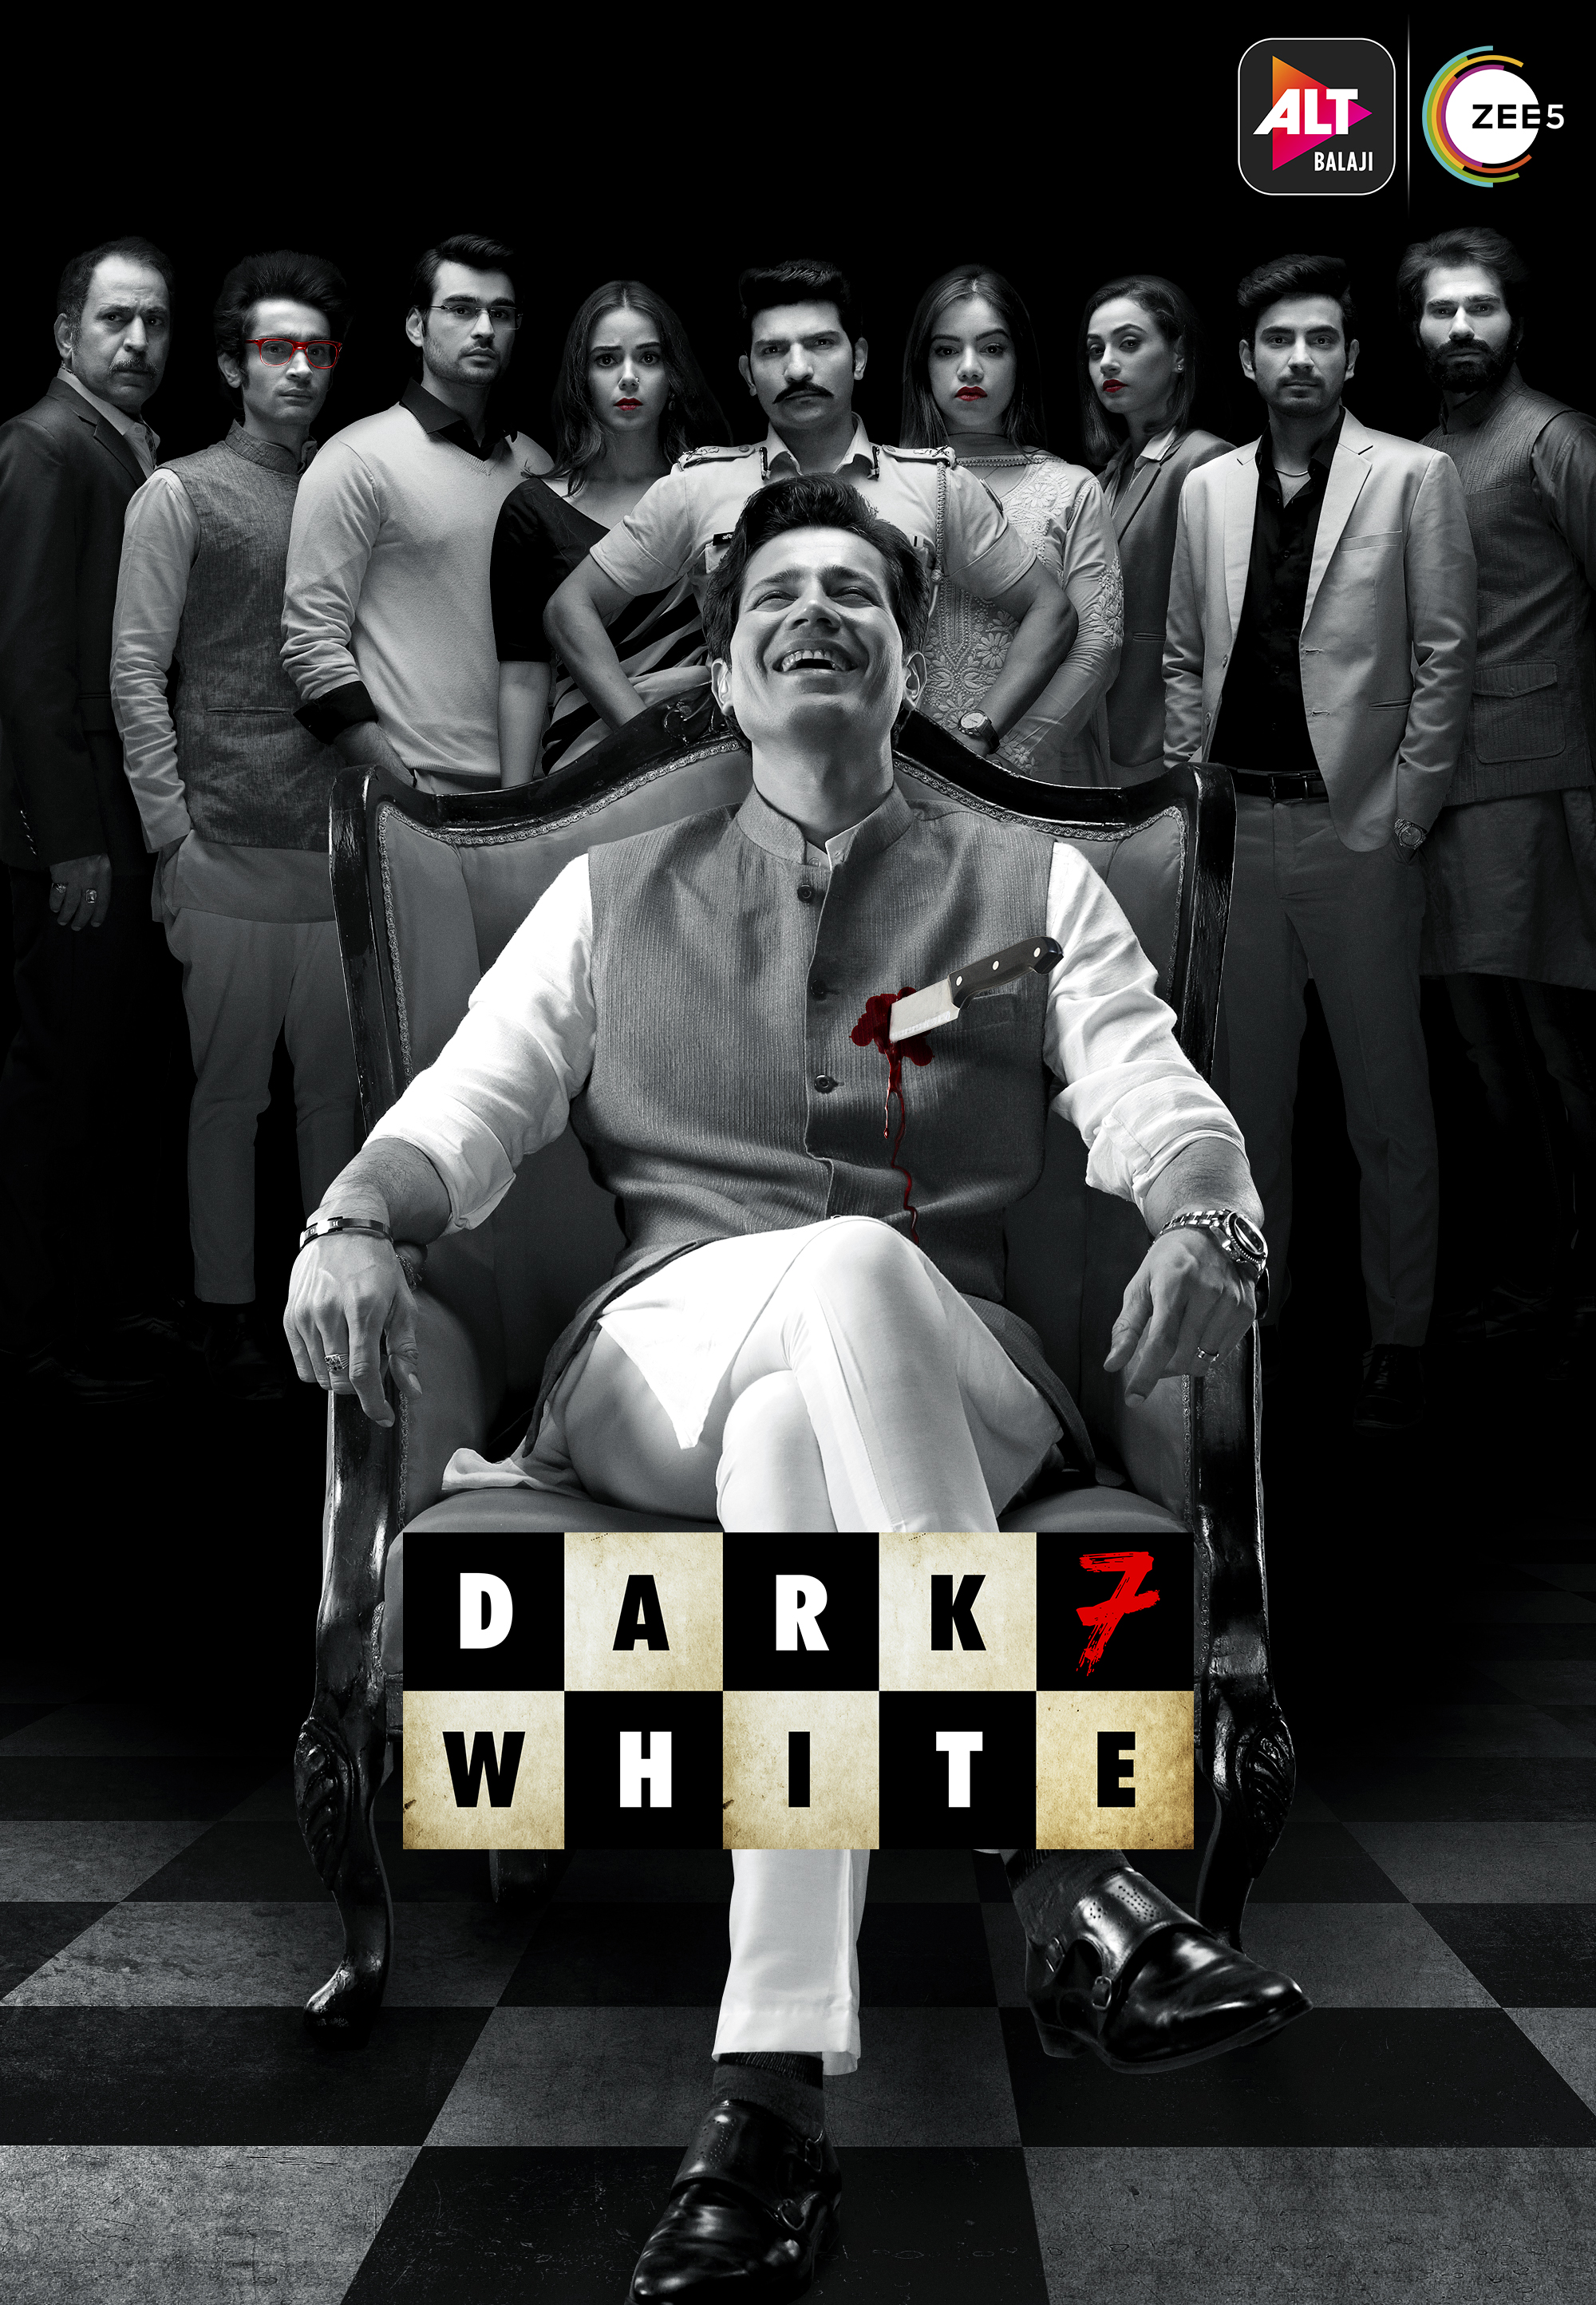 Dark 7 White 2020 S01 Hindi Complete ALTBalaji Original Web Series 640MB HDRip Download